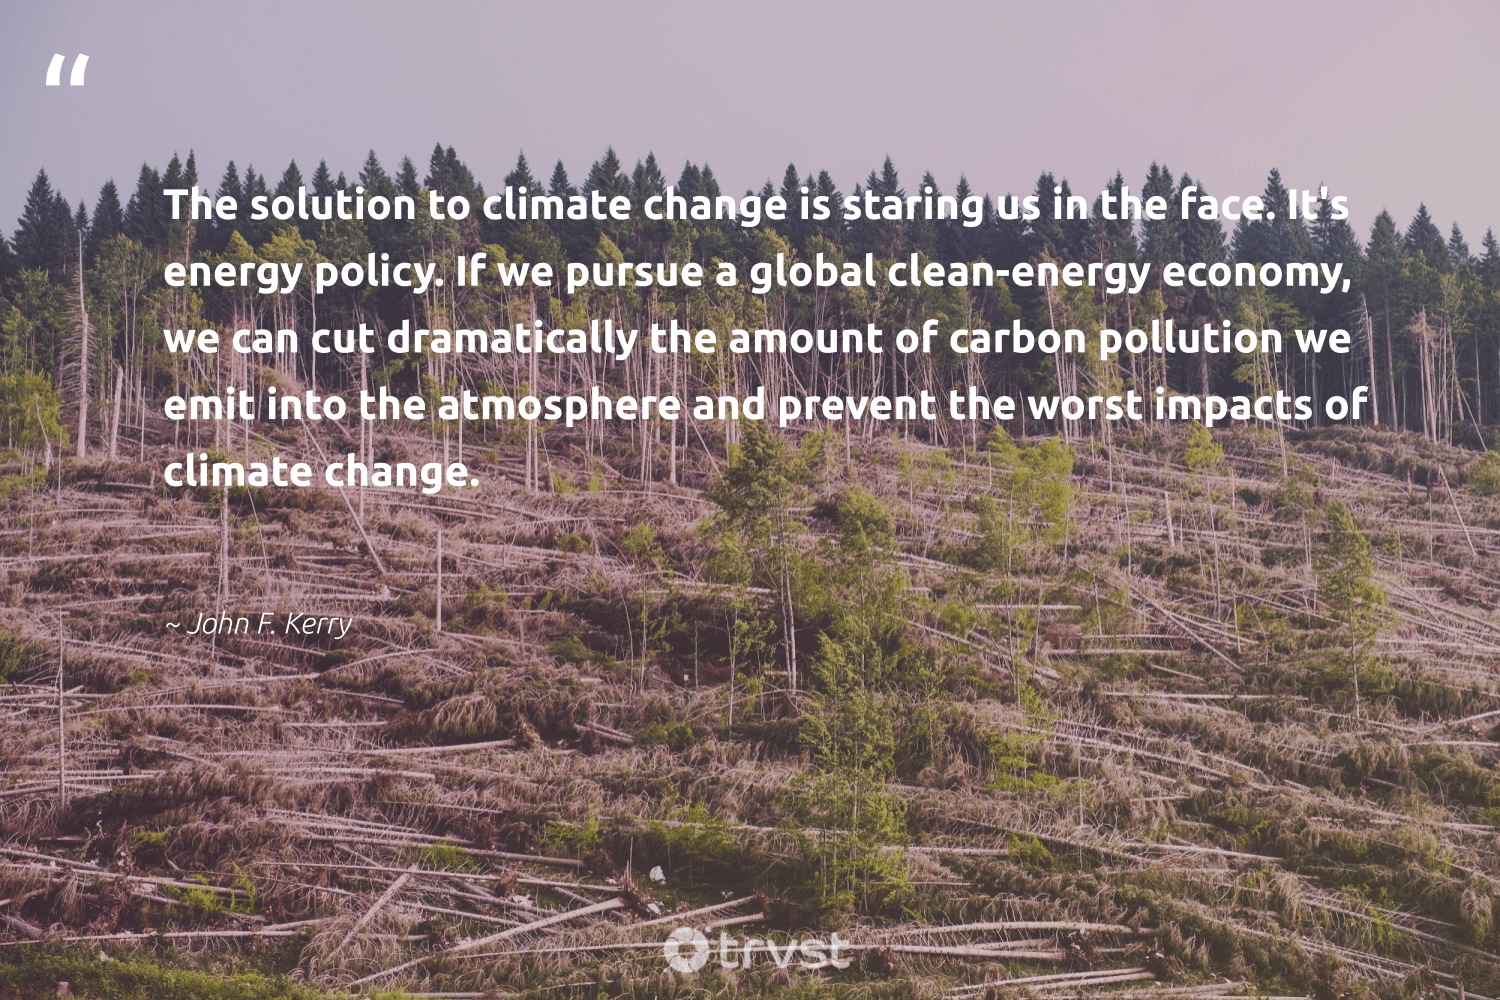 """""""The solution to climate change is staring us in the face. It's energy policy. If we pursue a global clean-energy economy, we can cut dramatically the amount of carbon pollution we emit into the atmosphere and prevent the worst impacts of climate change.""""  - John F. Kerry #trvst #quotes #climatechange #carbon #cleanenergy #energy #pollution #climate #impacts #globalwarming #renewable #climateaction"""